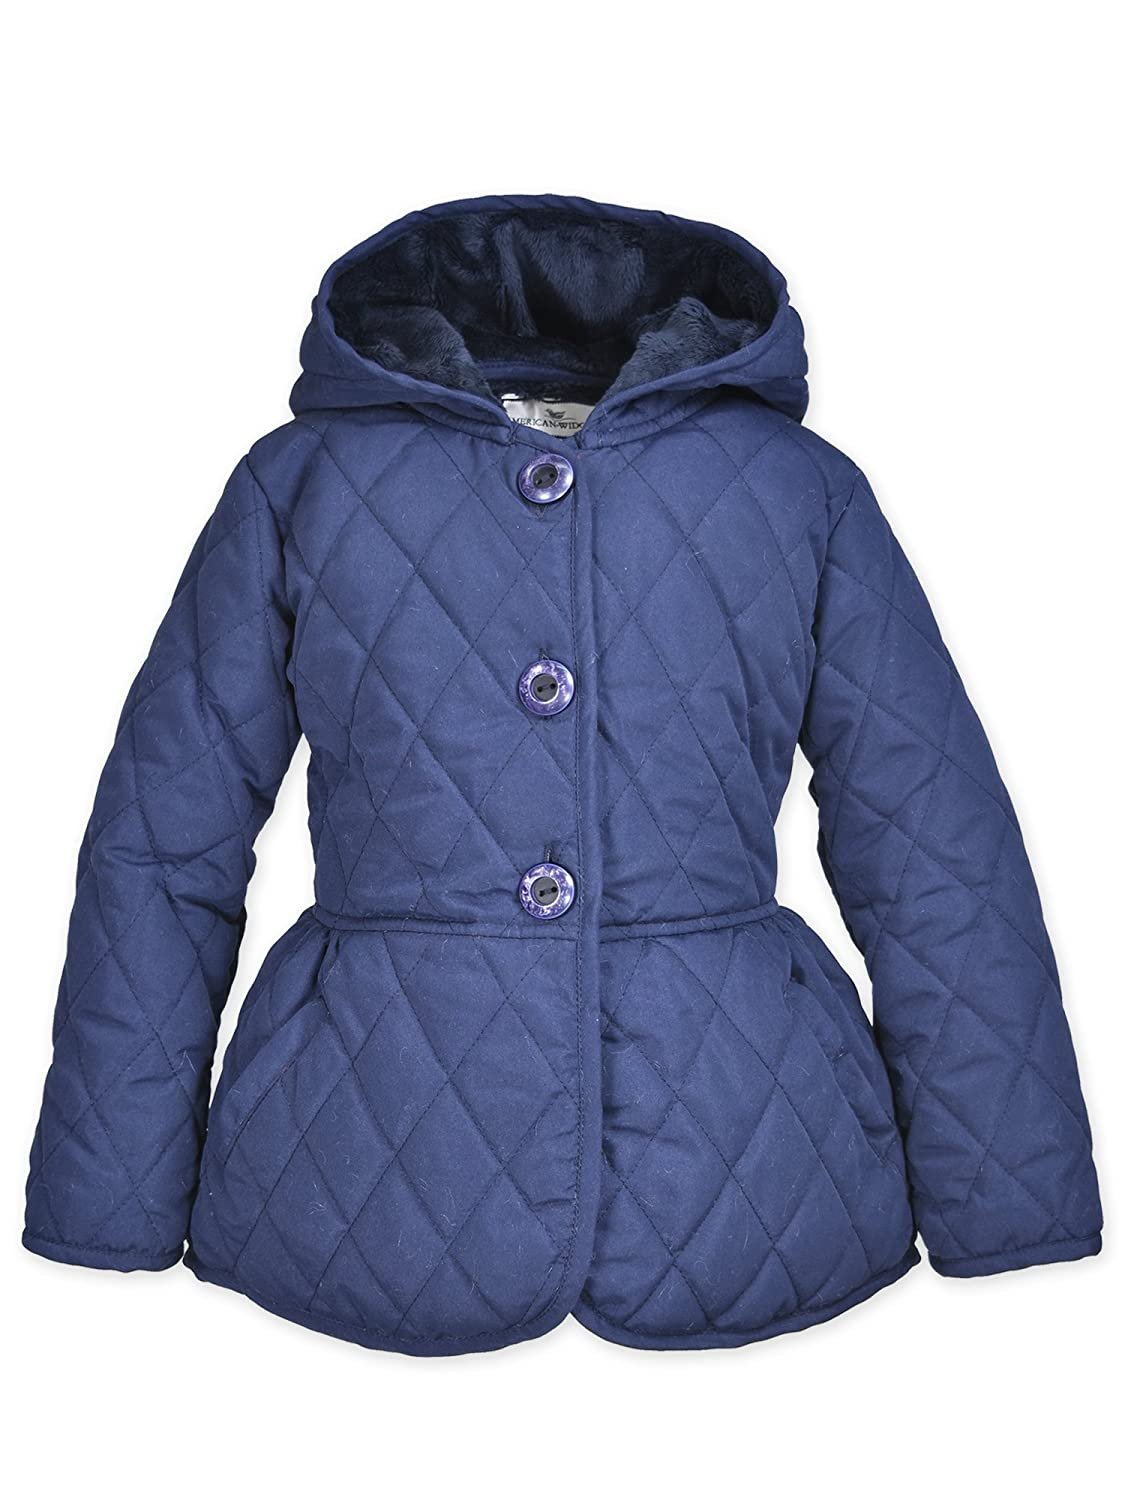 24fbbbd8c Amazon.com  Widgeon Quilted Nylon Peplum Jacket Outerwear  Clothing